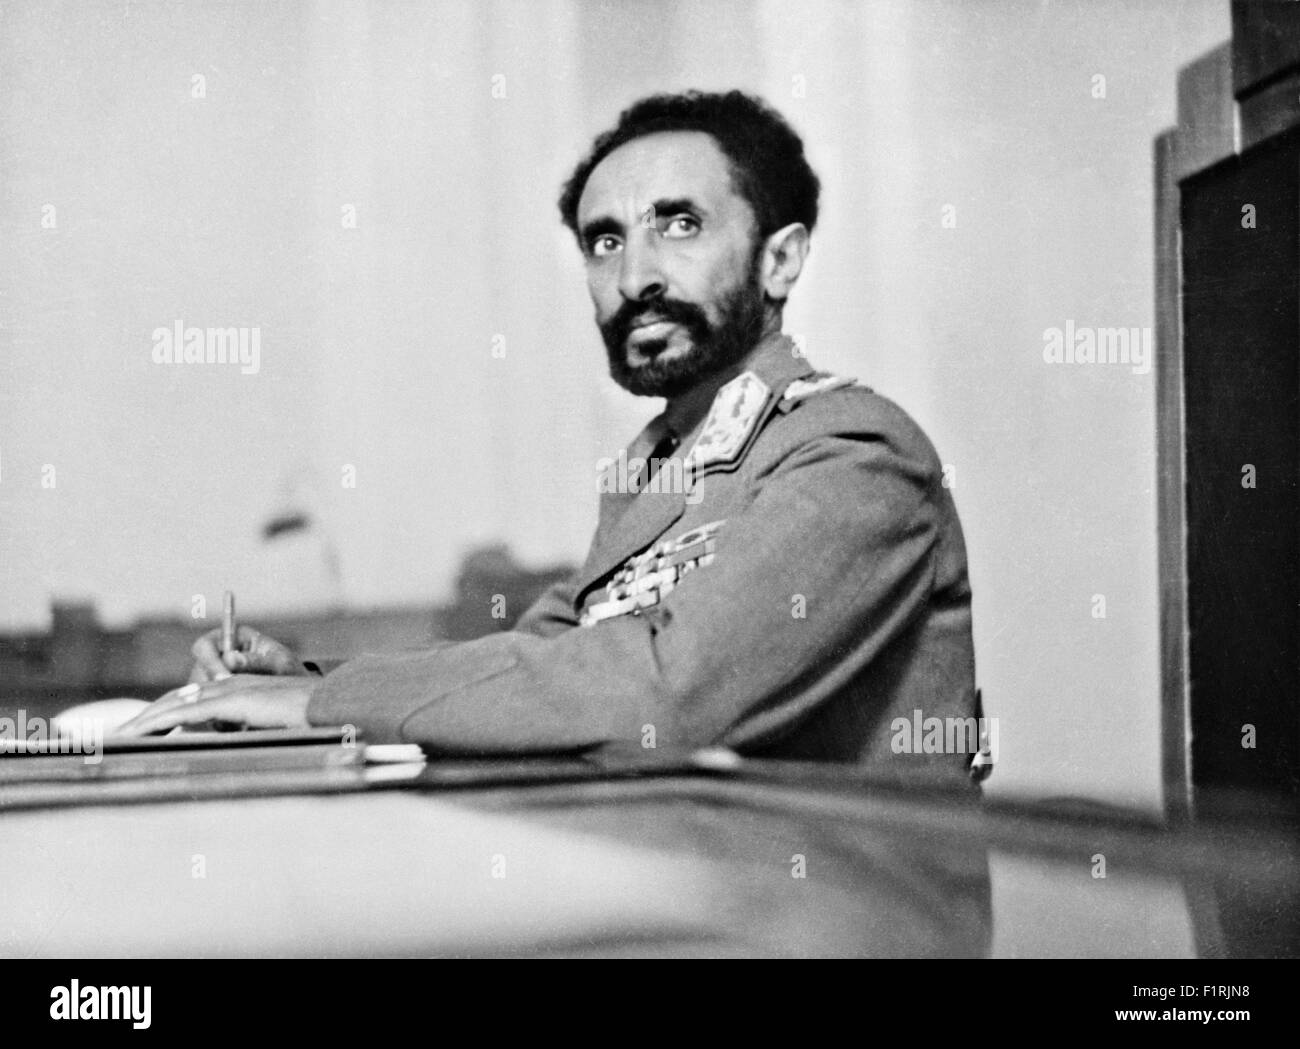 Ethiopian Emperor Haile Selassie I in his study at the Palace 1942 in Addis Ababa, Ethiopia. - Stock Image